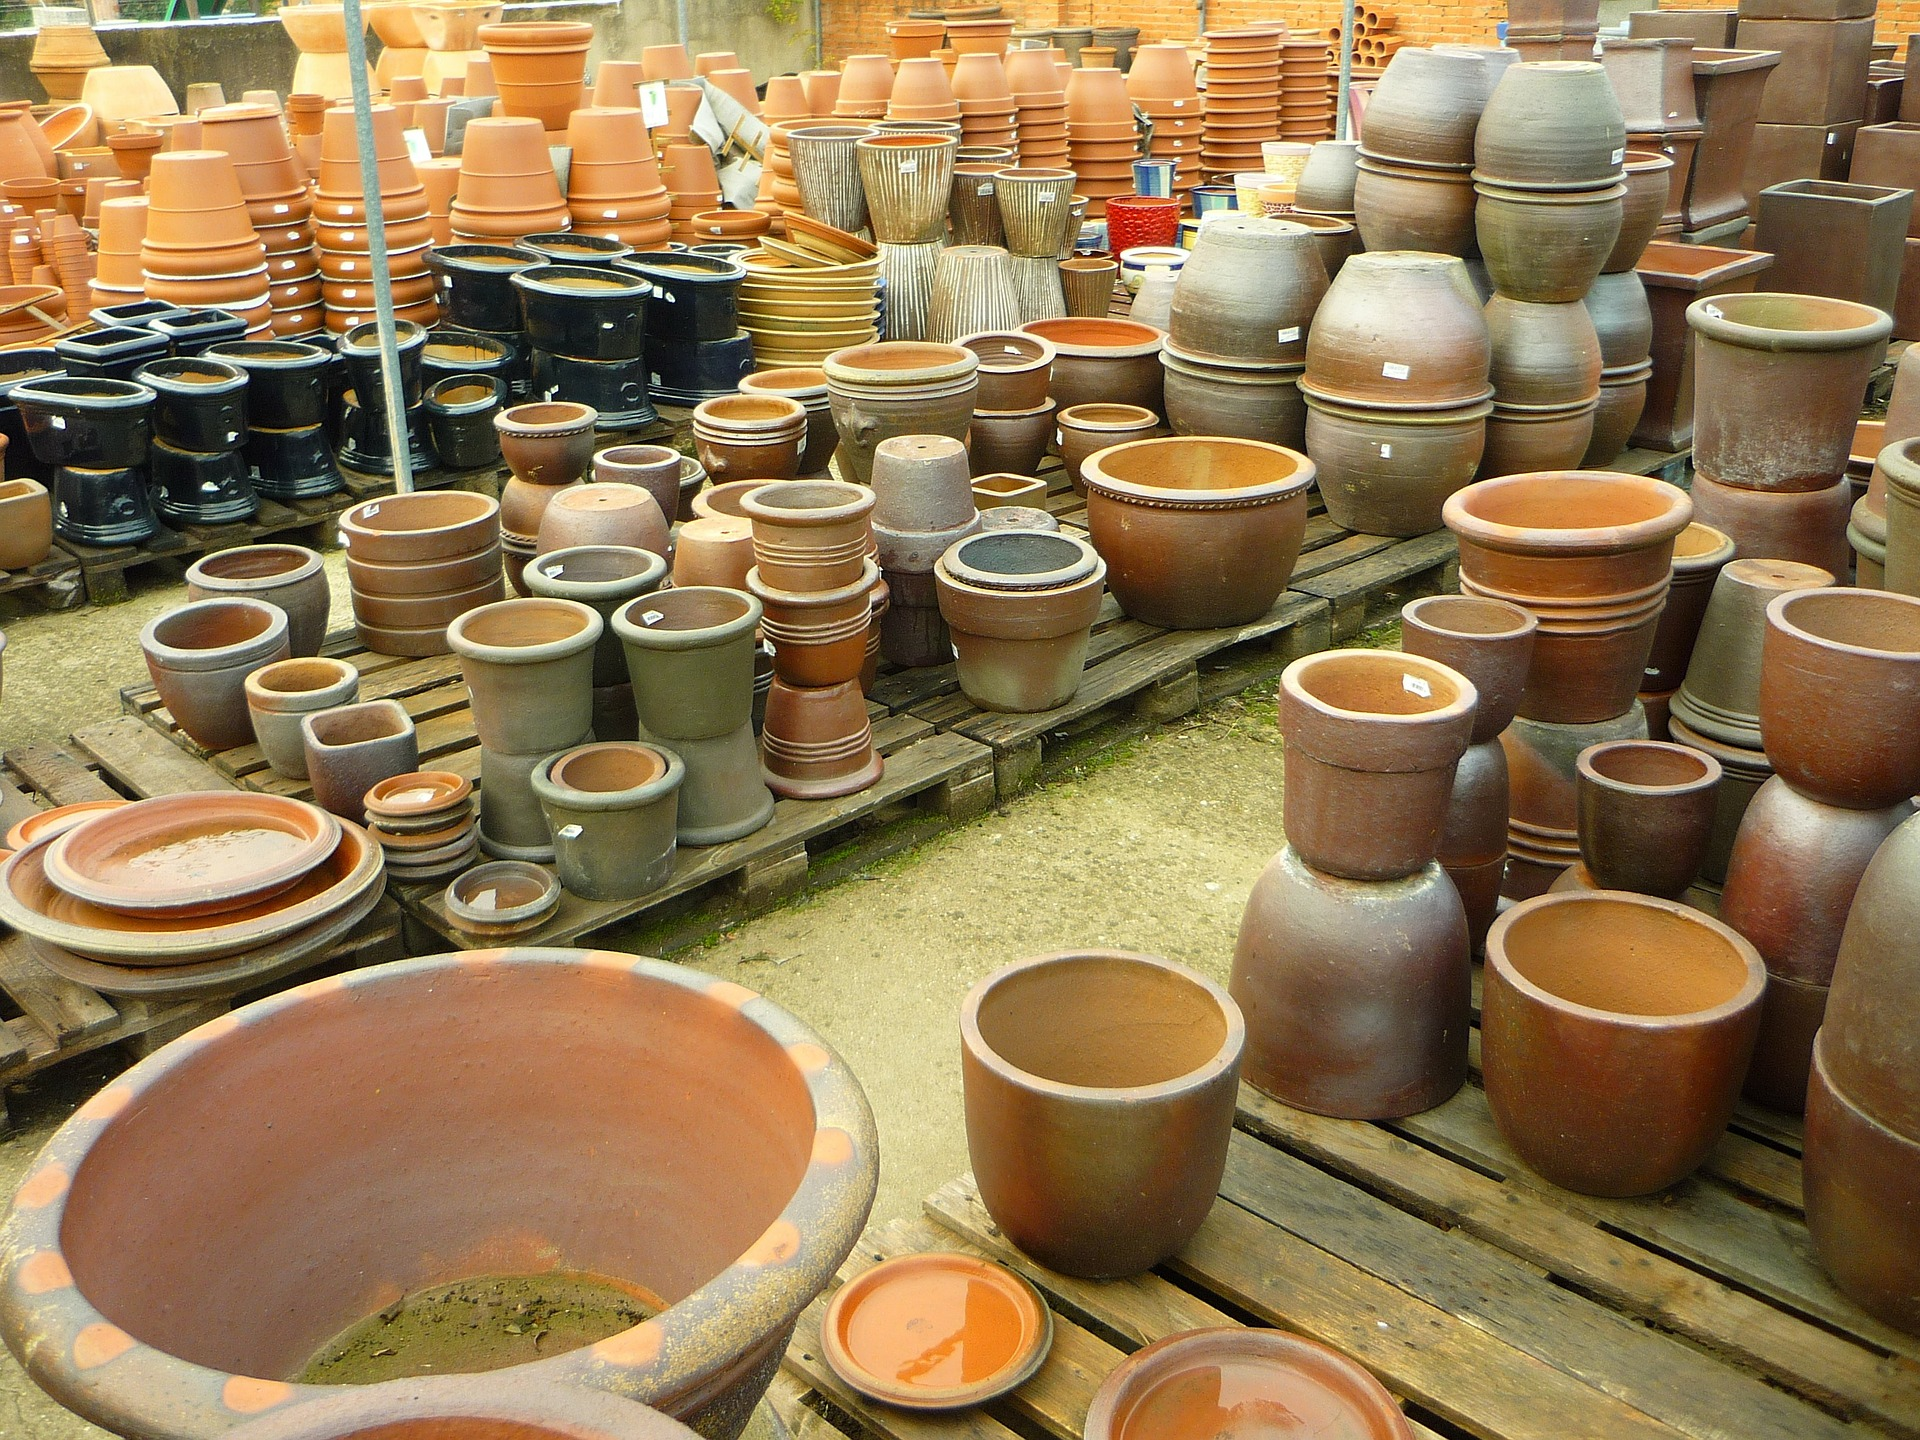 lots of pots.jpg thumbnail